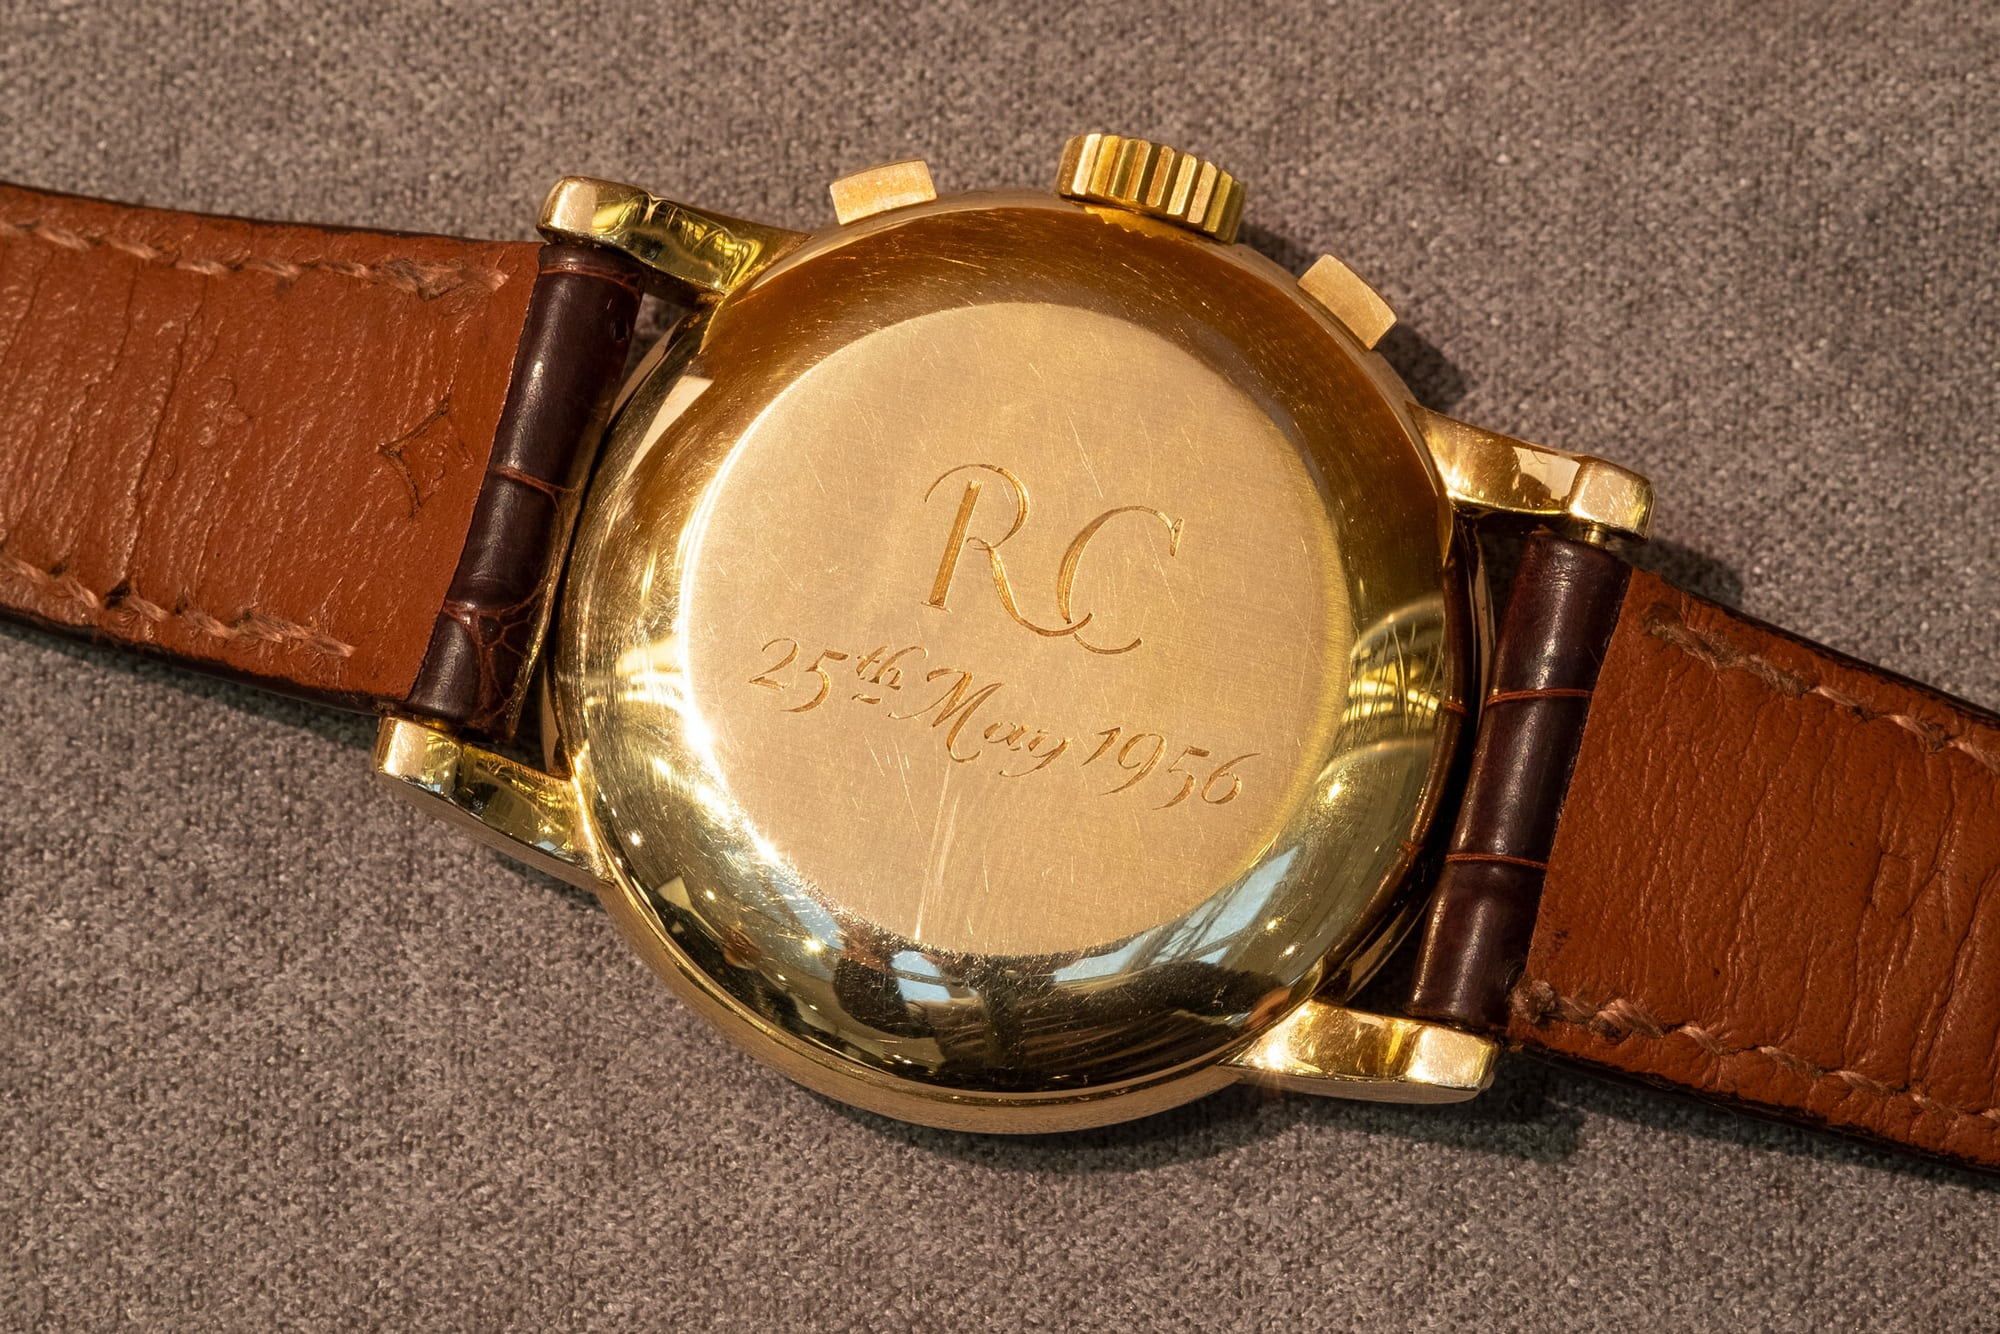 Breaking News: The Only Known Asprey-Signed Patek Philippe Ref. 2499 Sells For $3.88 Million At Sotheby's, Setting A New World Record sothebys 01